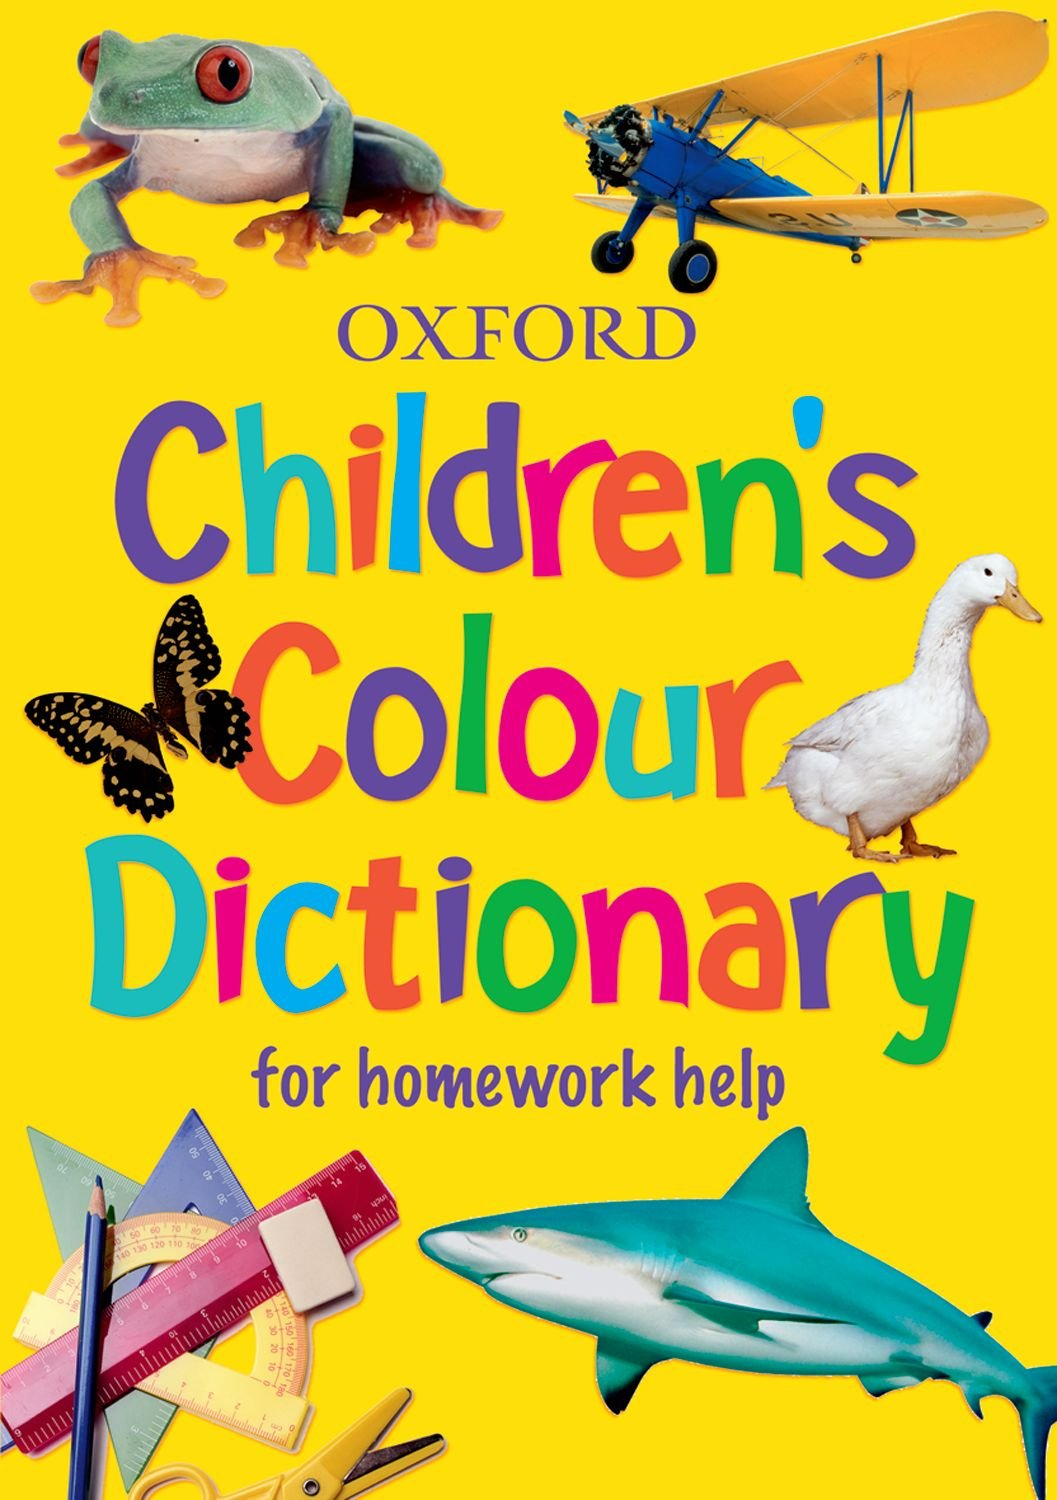 oxford childrens colour dictionary for homework help amazoncouk sheila dignen 9780199113187 books - Childrens Pictures To Colour In